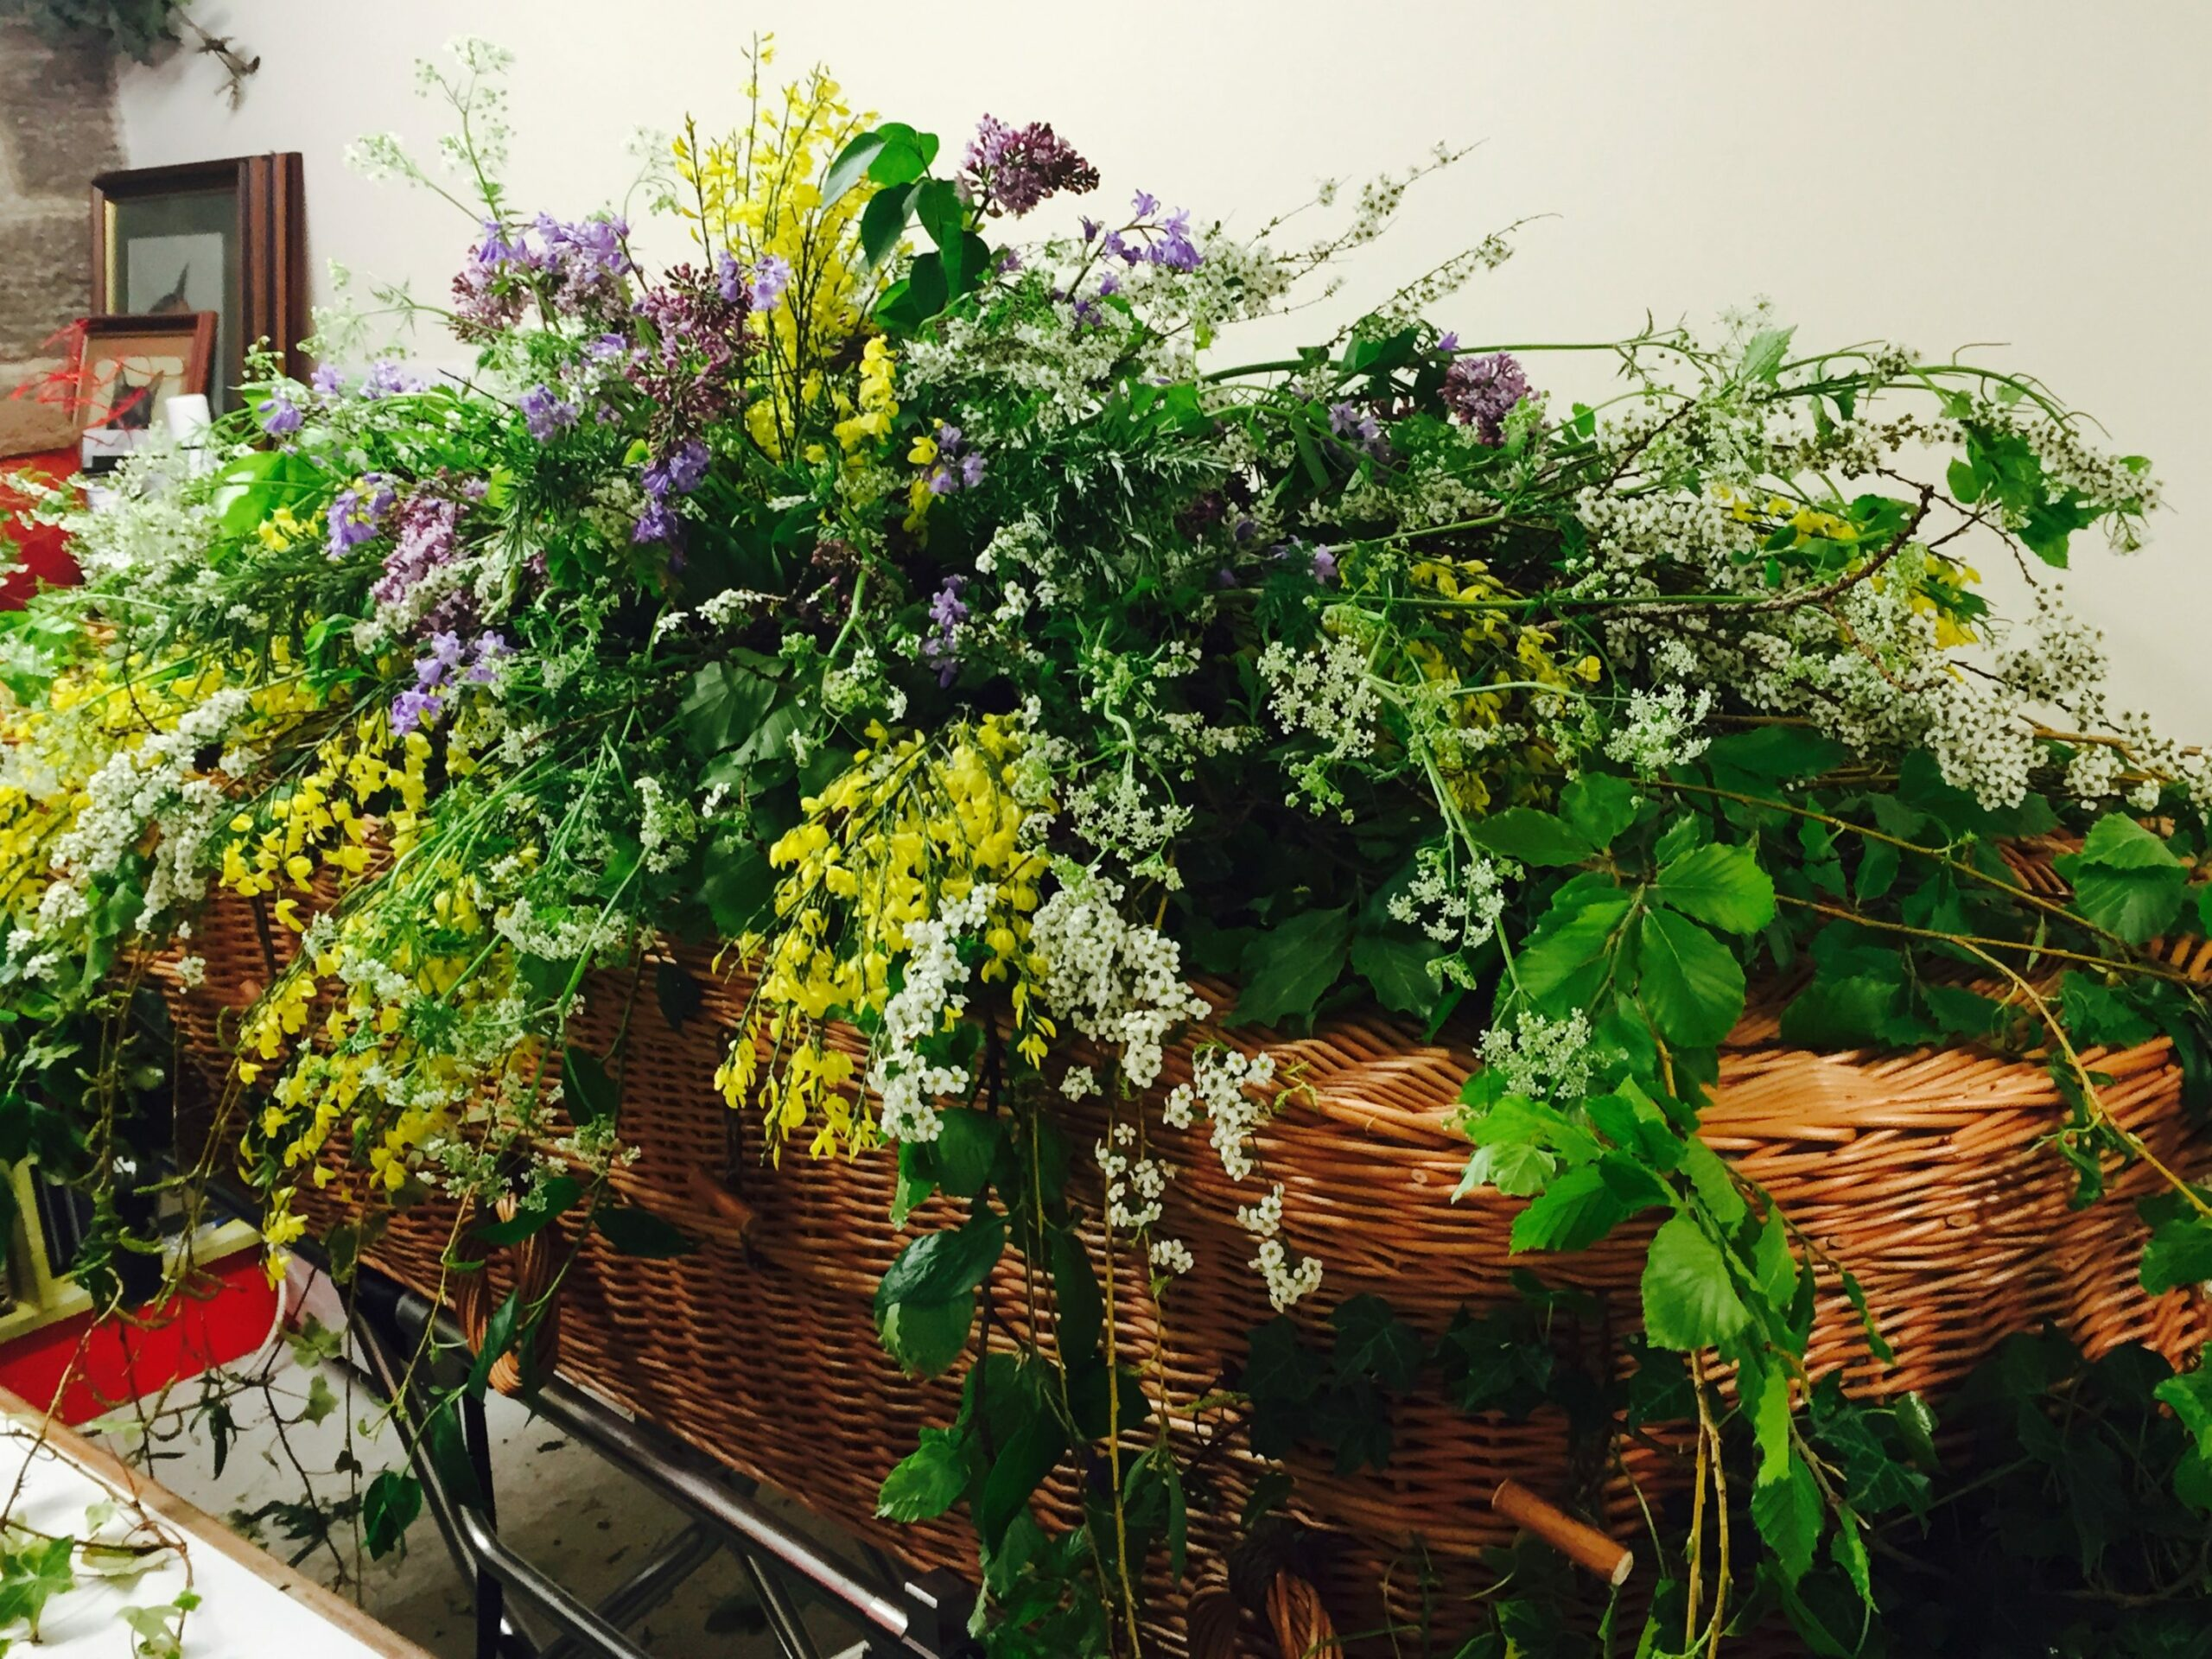 Wicker coffin with lots of flowers on